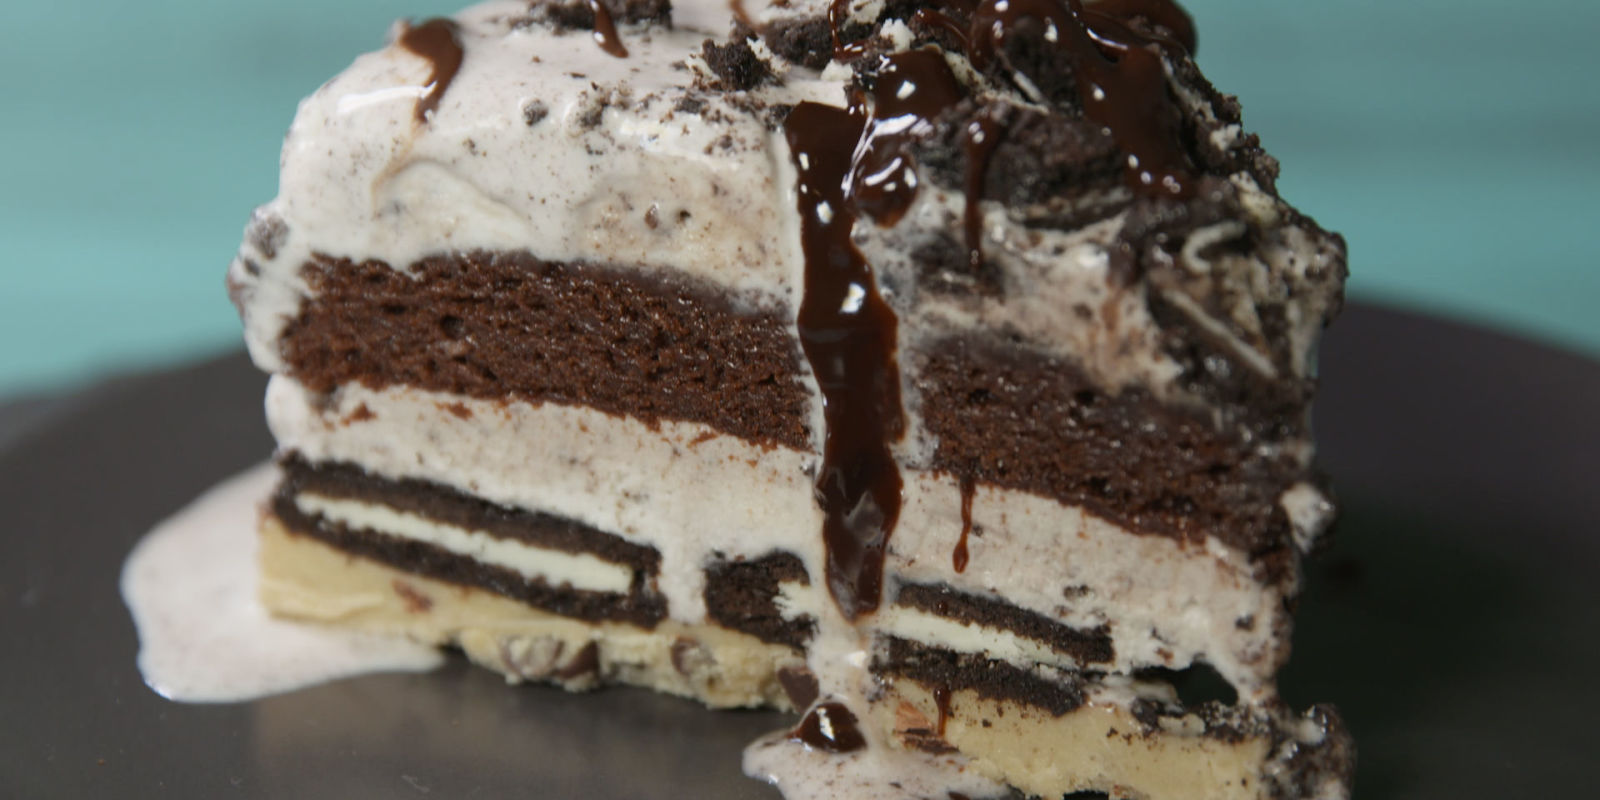 Slutty Brownie Ice Cream Cake - Slutty Brownie Cake